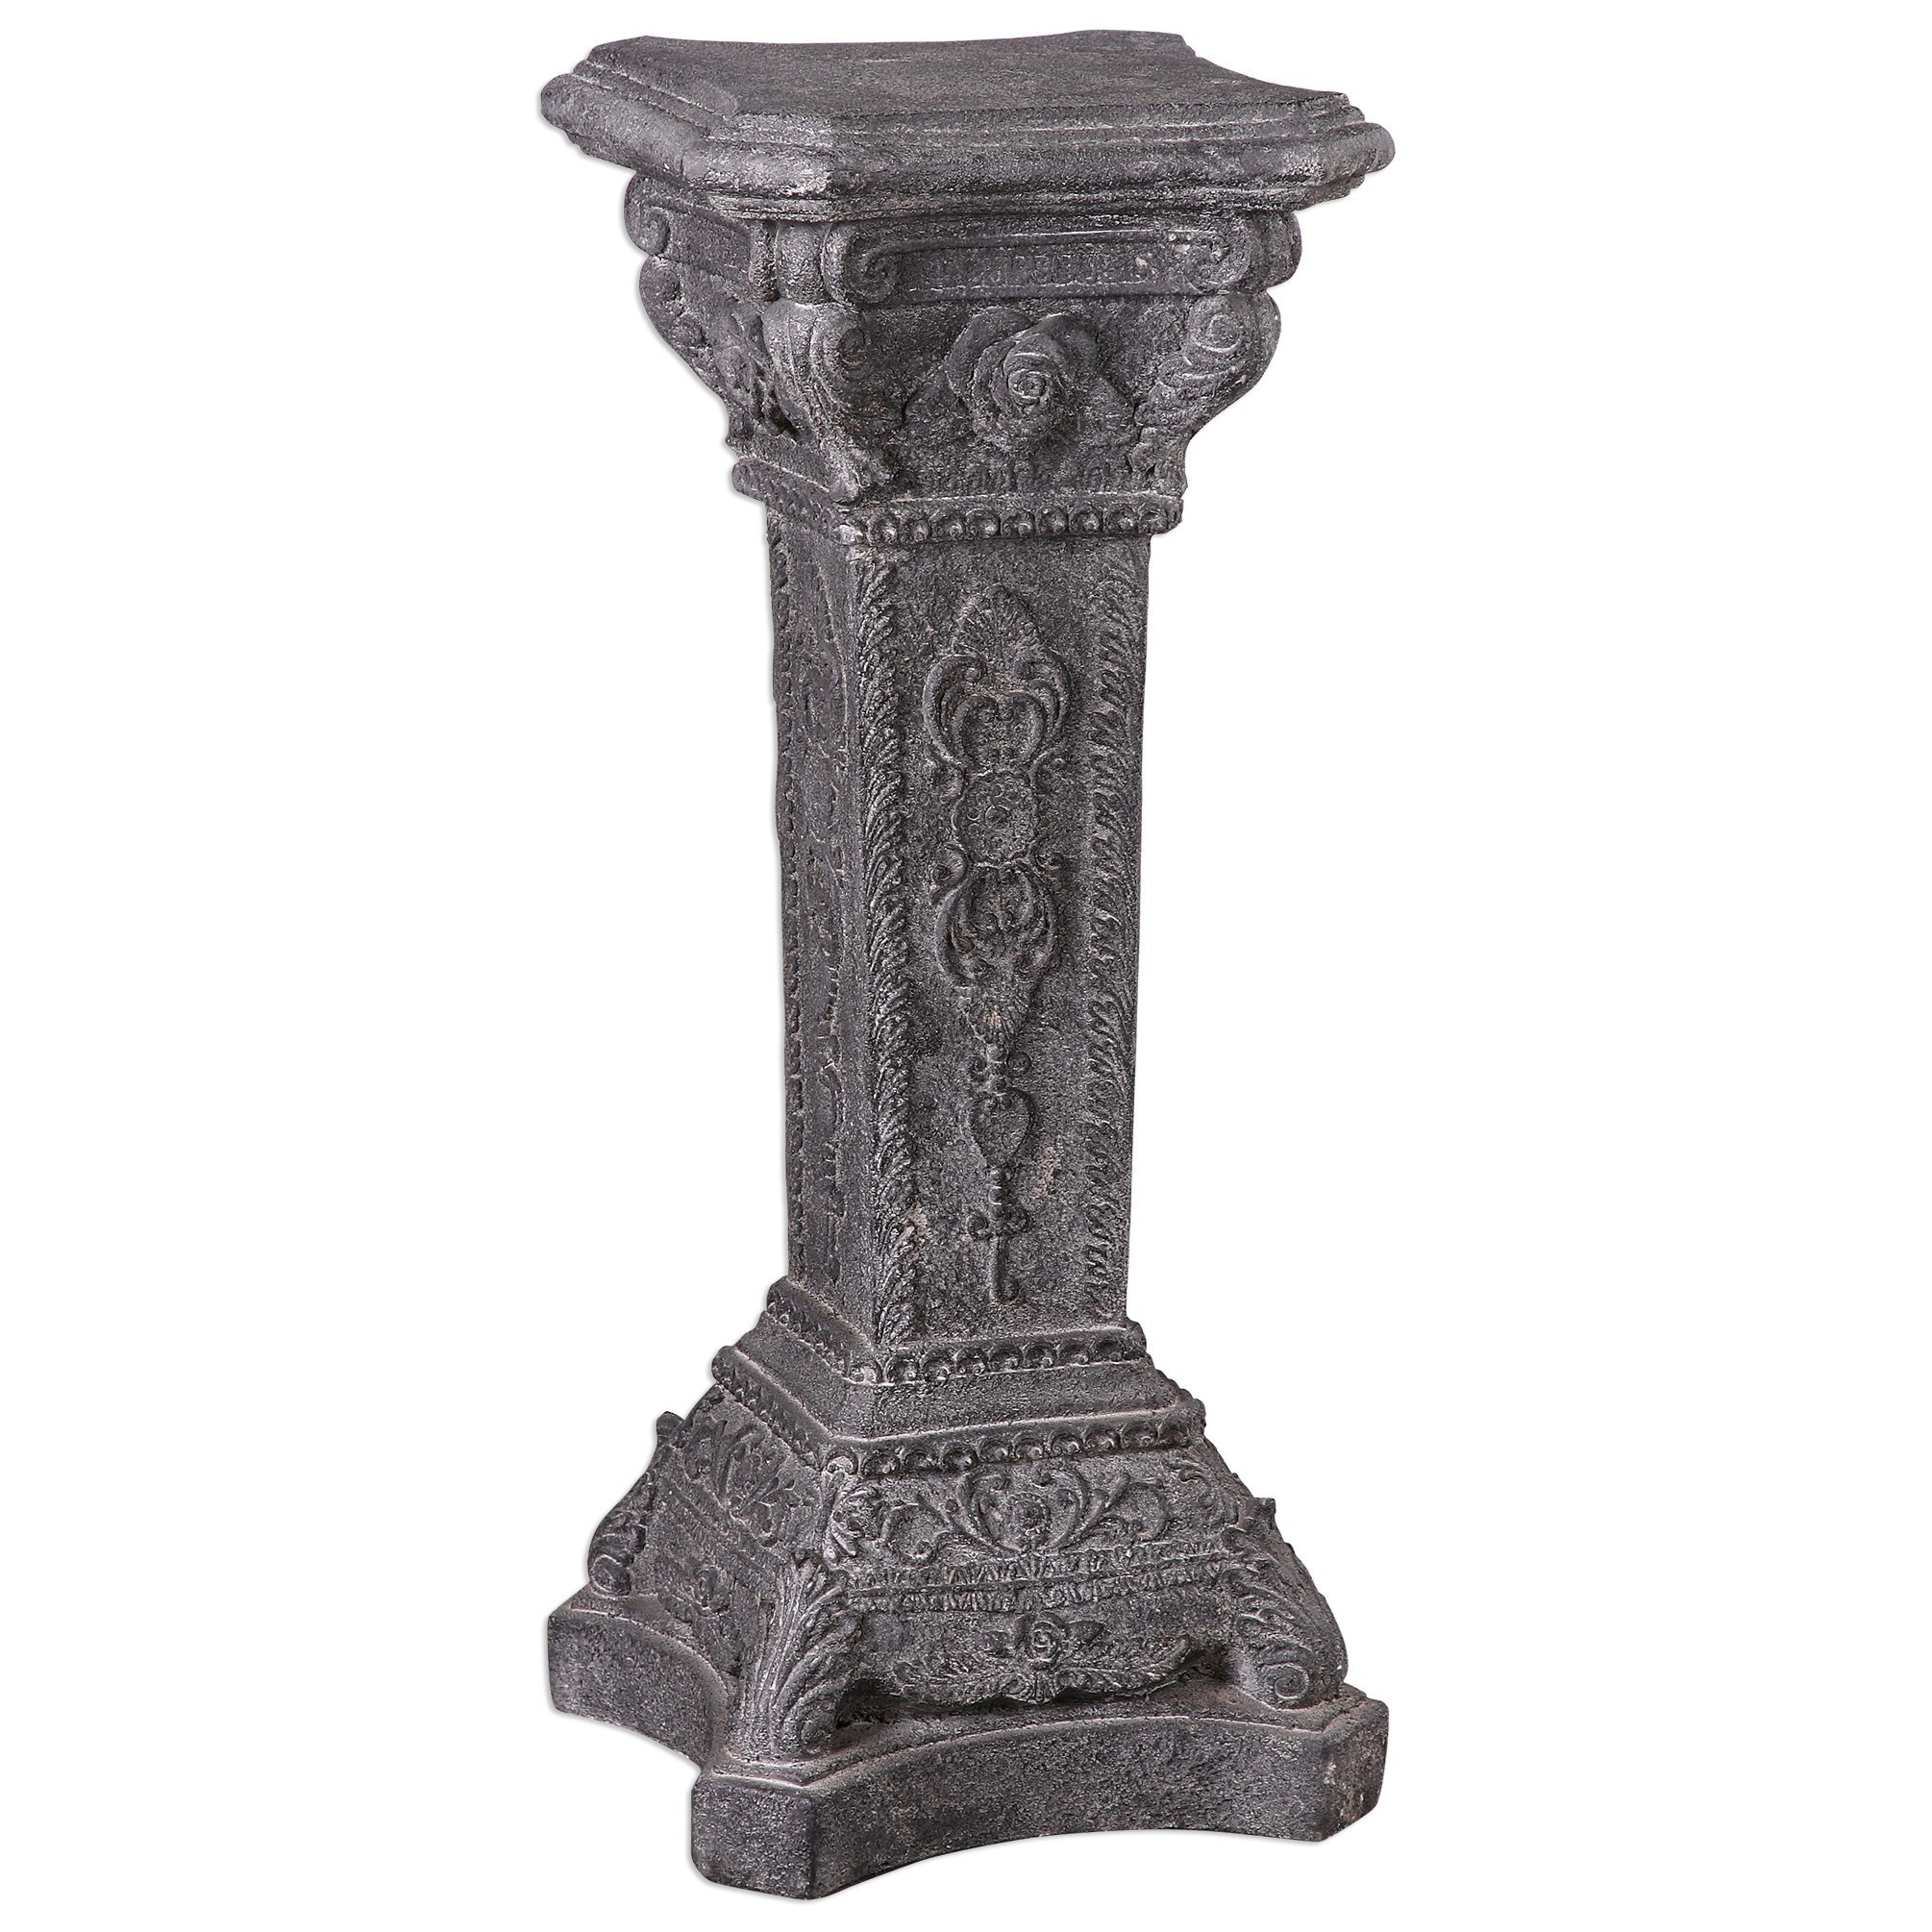 Uttermost Accent Furniture Maurizio Stone Plant Stand - Item Number: 24624